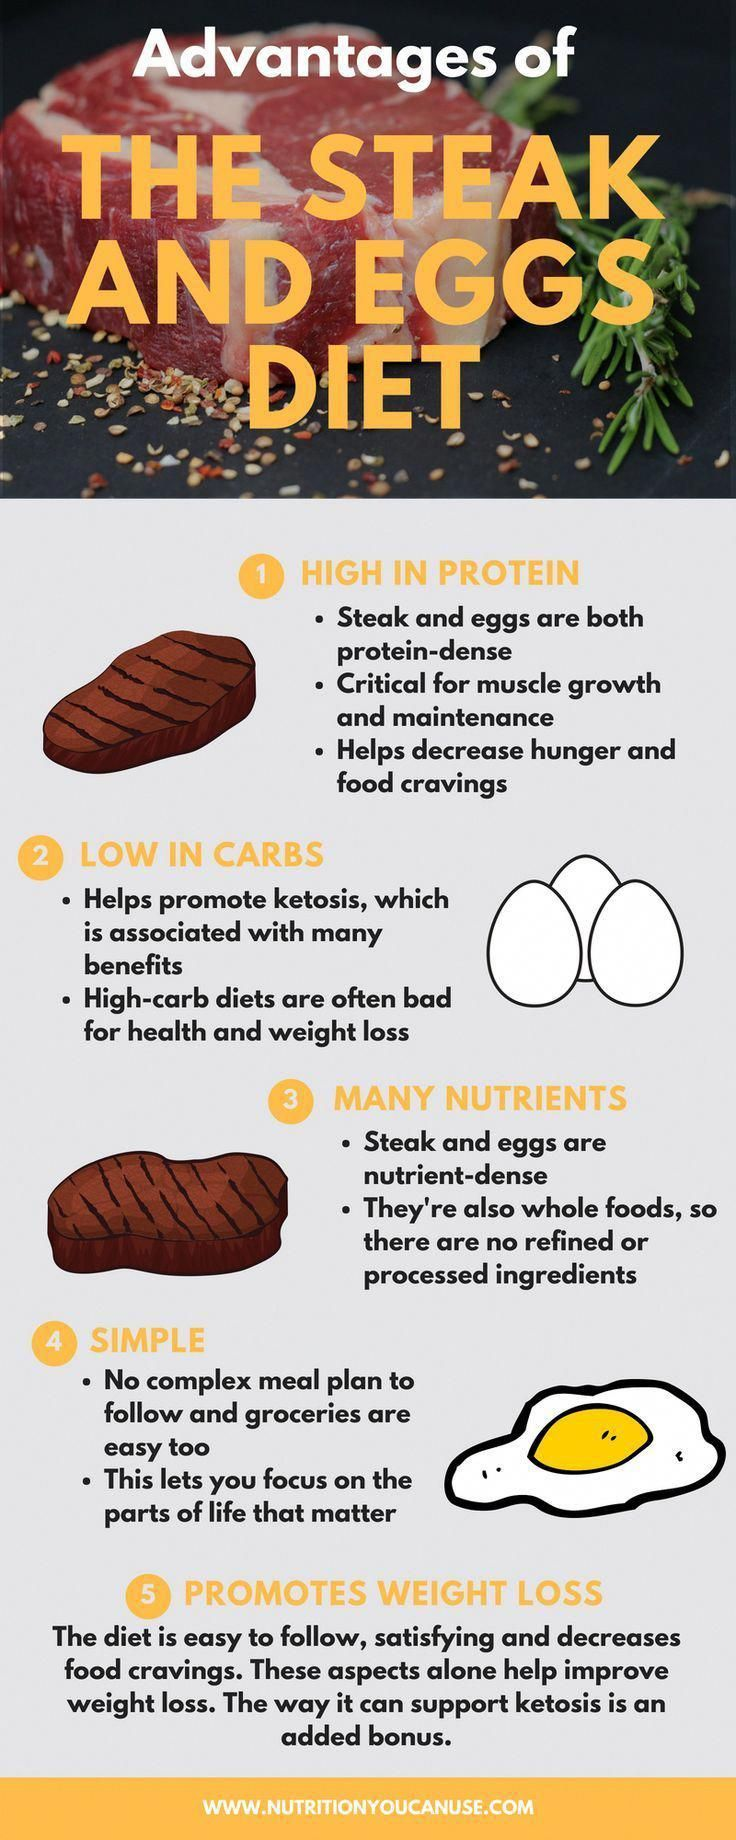 Many weight loss diets seem logical - but not this one. The steak and eggs diet defies all expectations, especially as it seems to work for many people. But, how realistic is it in the long-term? #meat #steak #diet #weight-loss #UnusualMolesOnSkin